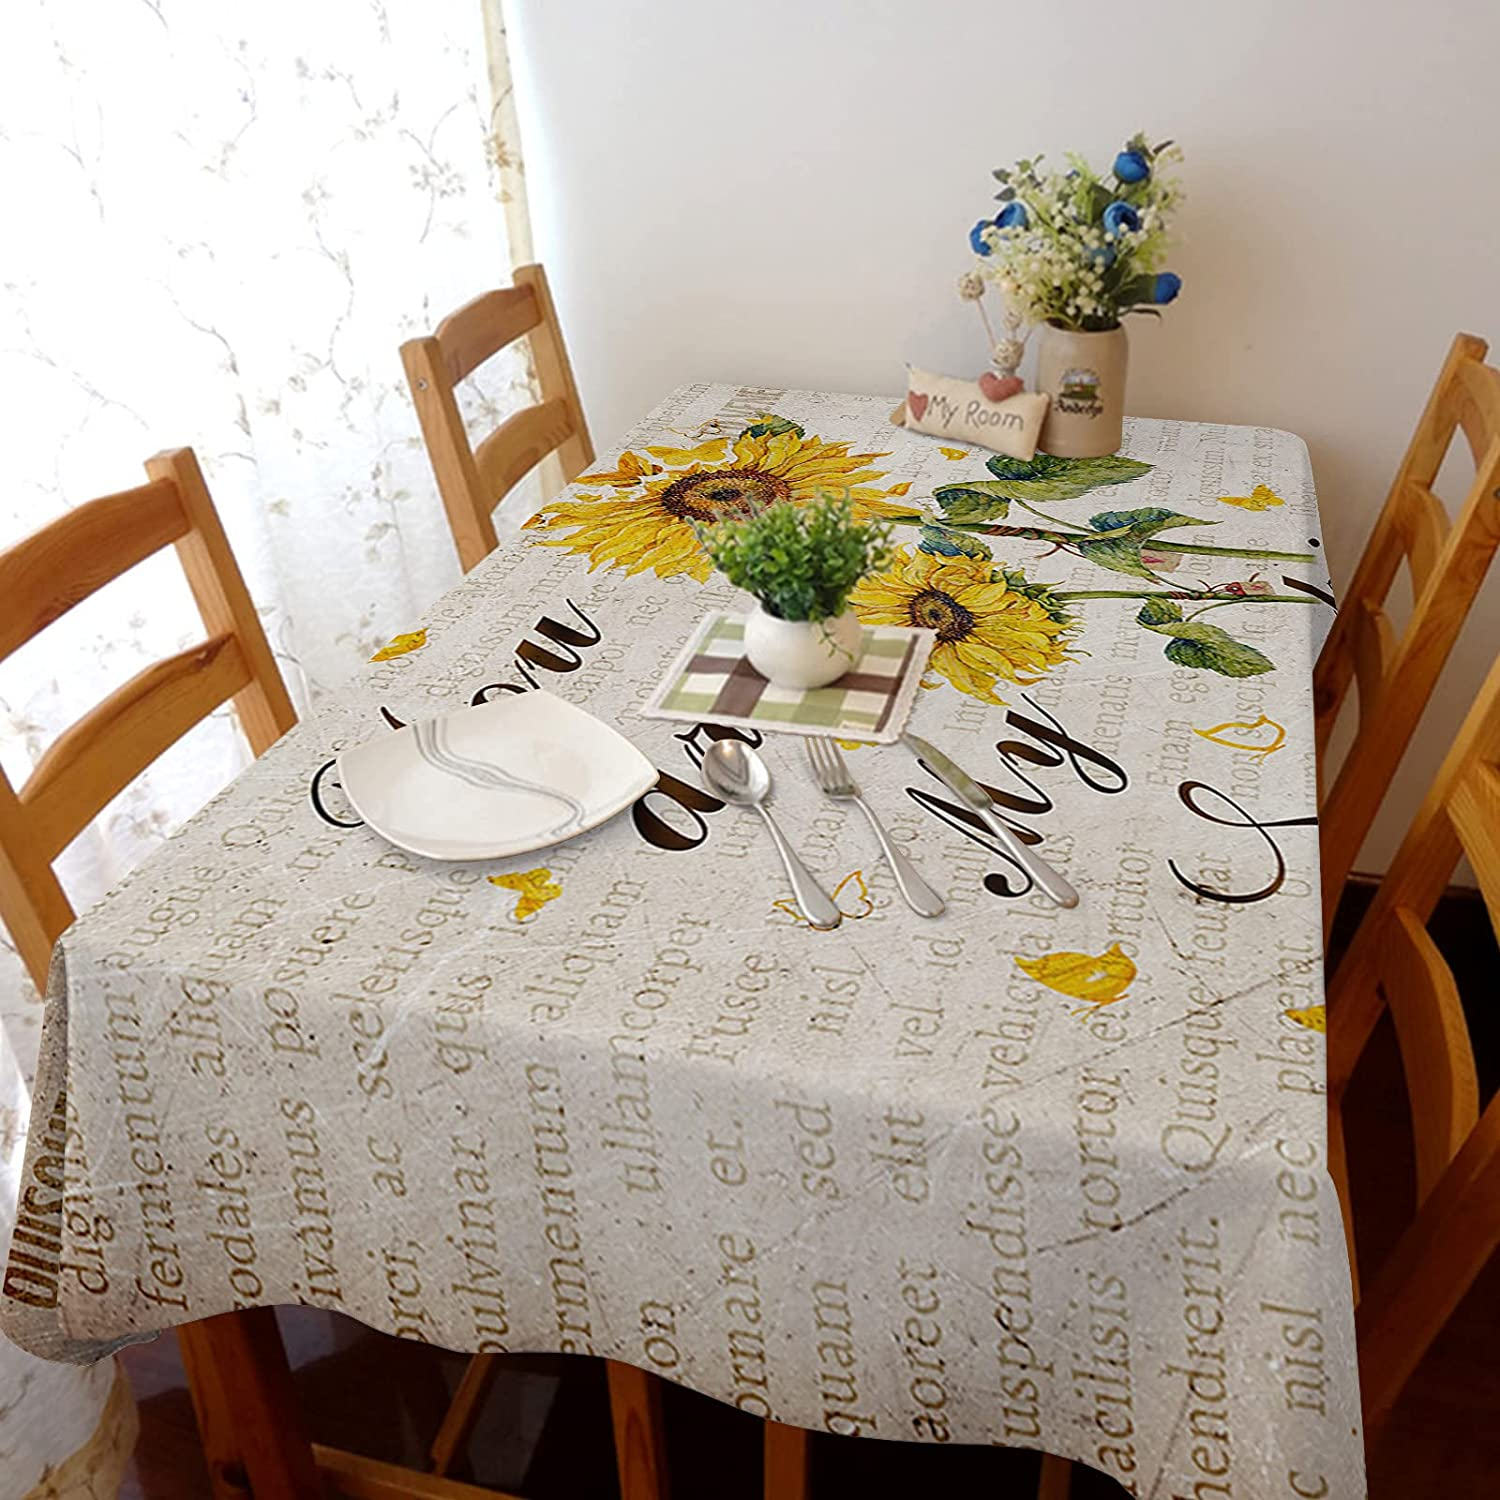 Tablecloth Linen Burlap Weights Fabric You Sunfl Are New sales My Sunshine Inexpensive